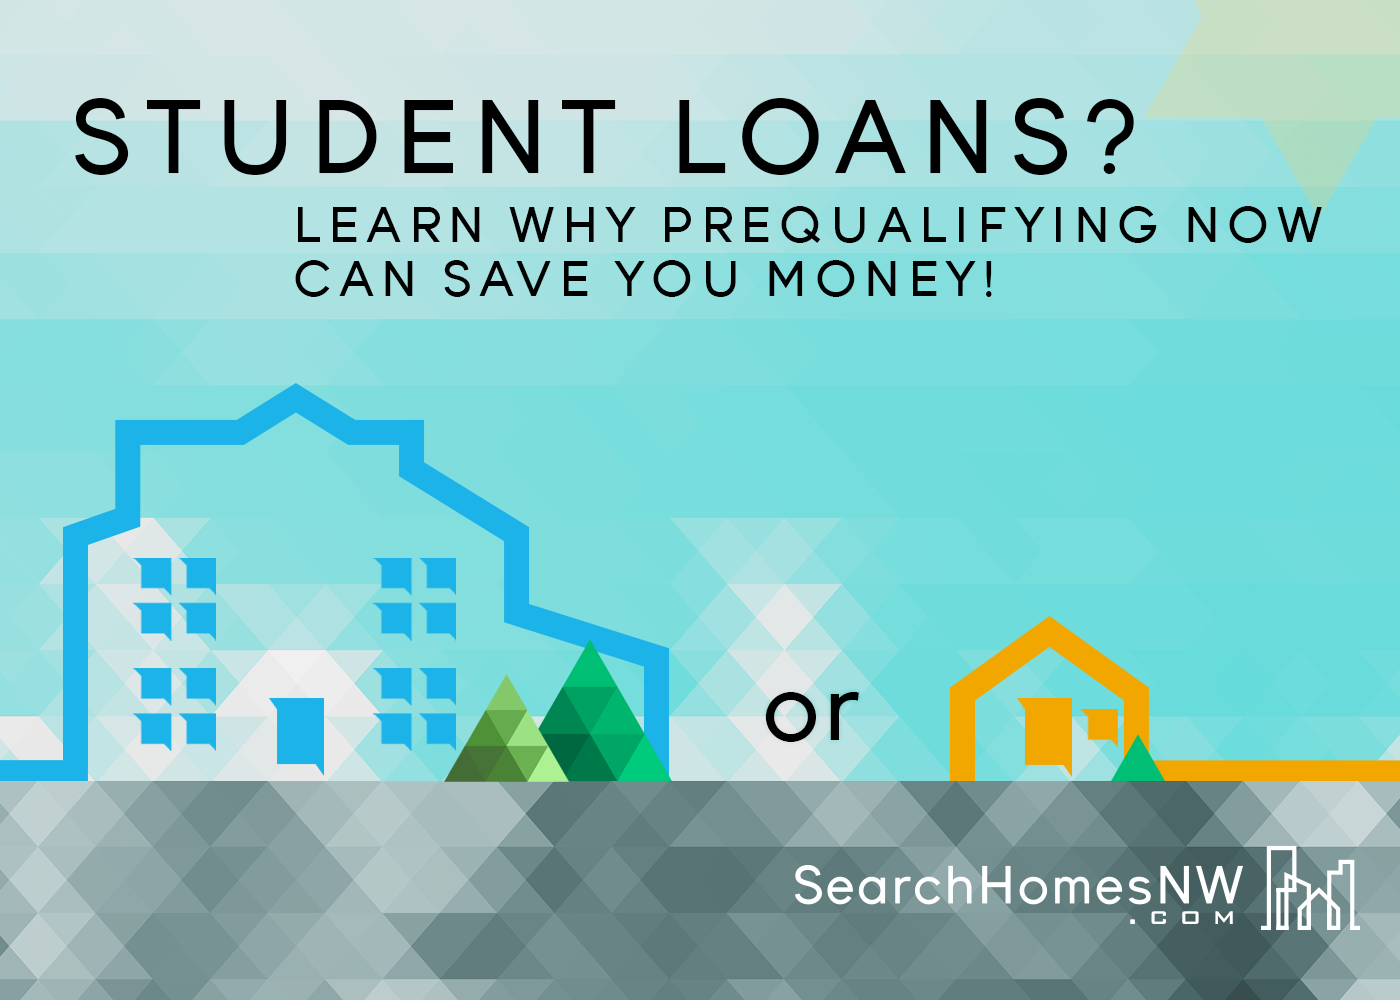 FHA Loan Guidelines are Changing on Student Loan Qualifications